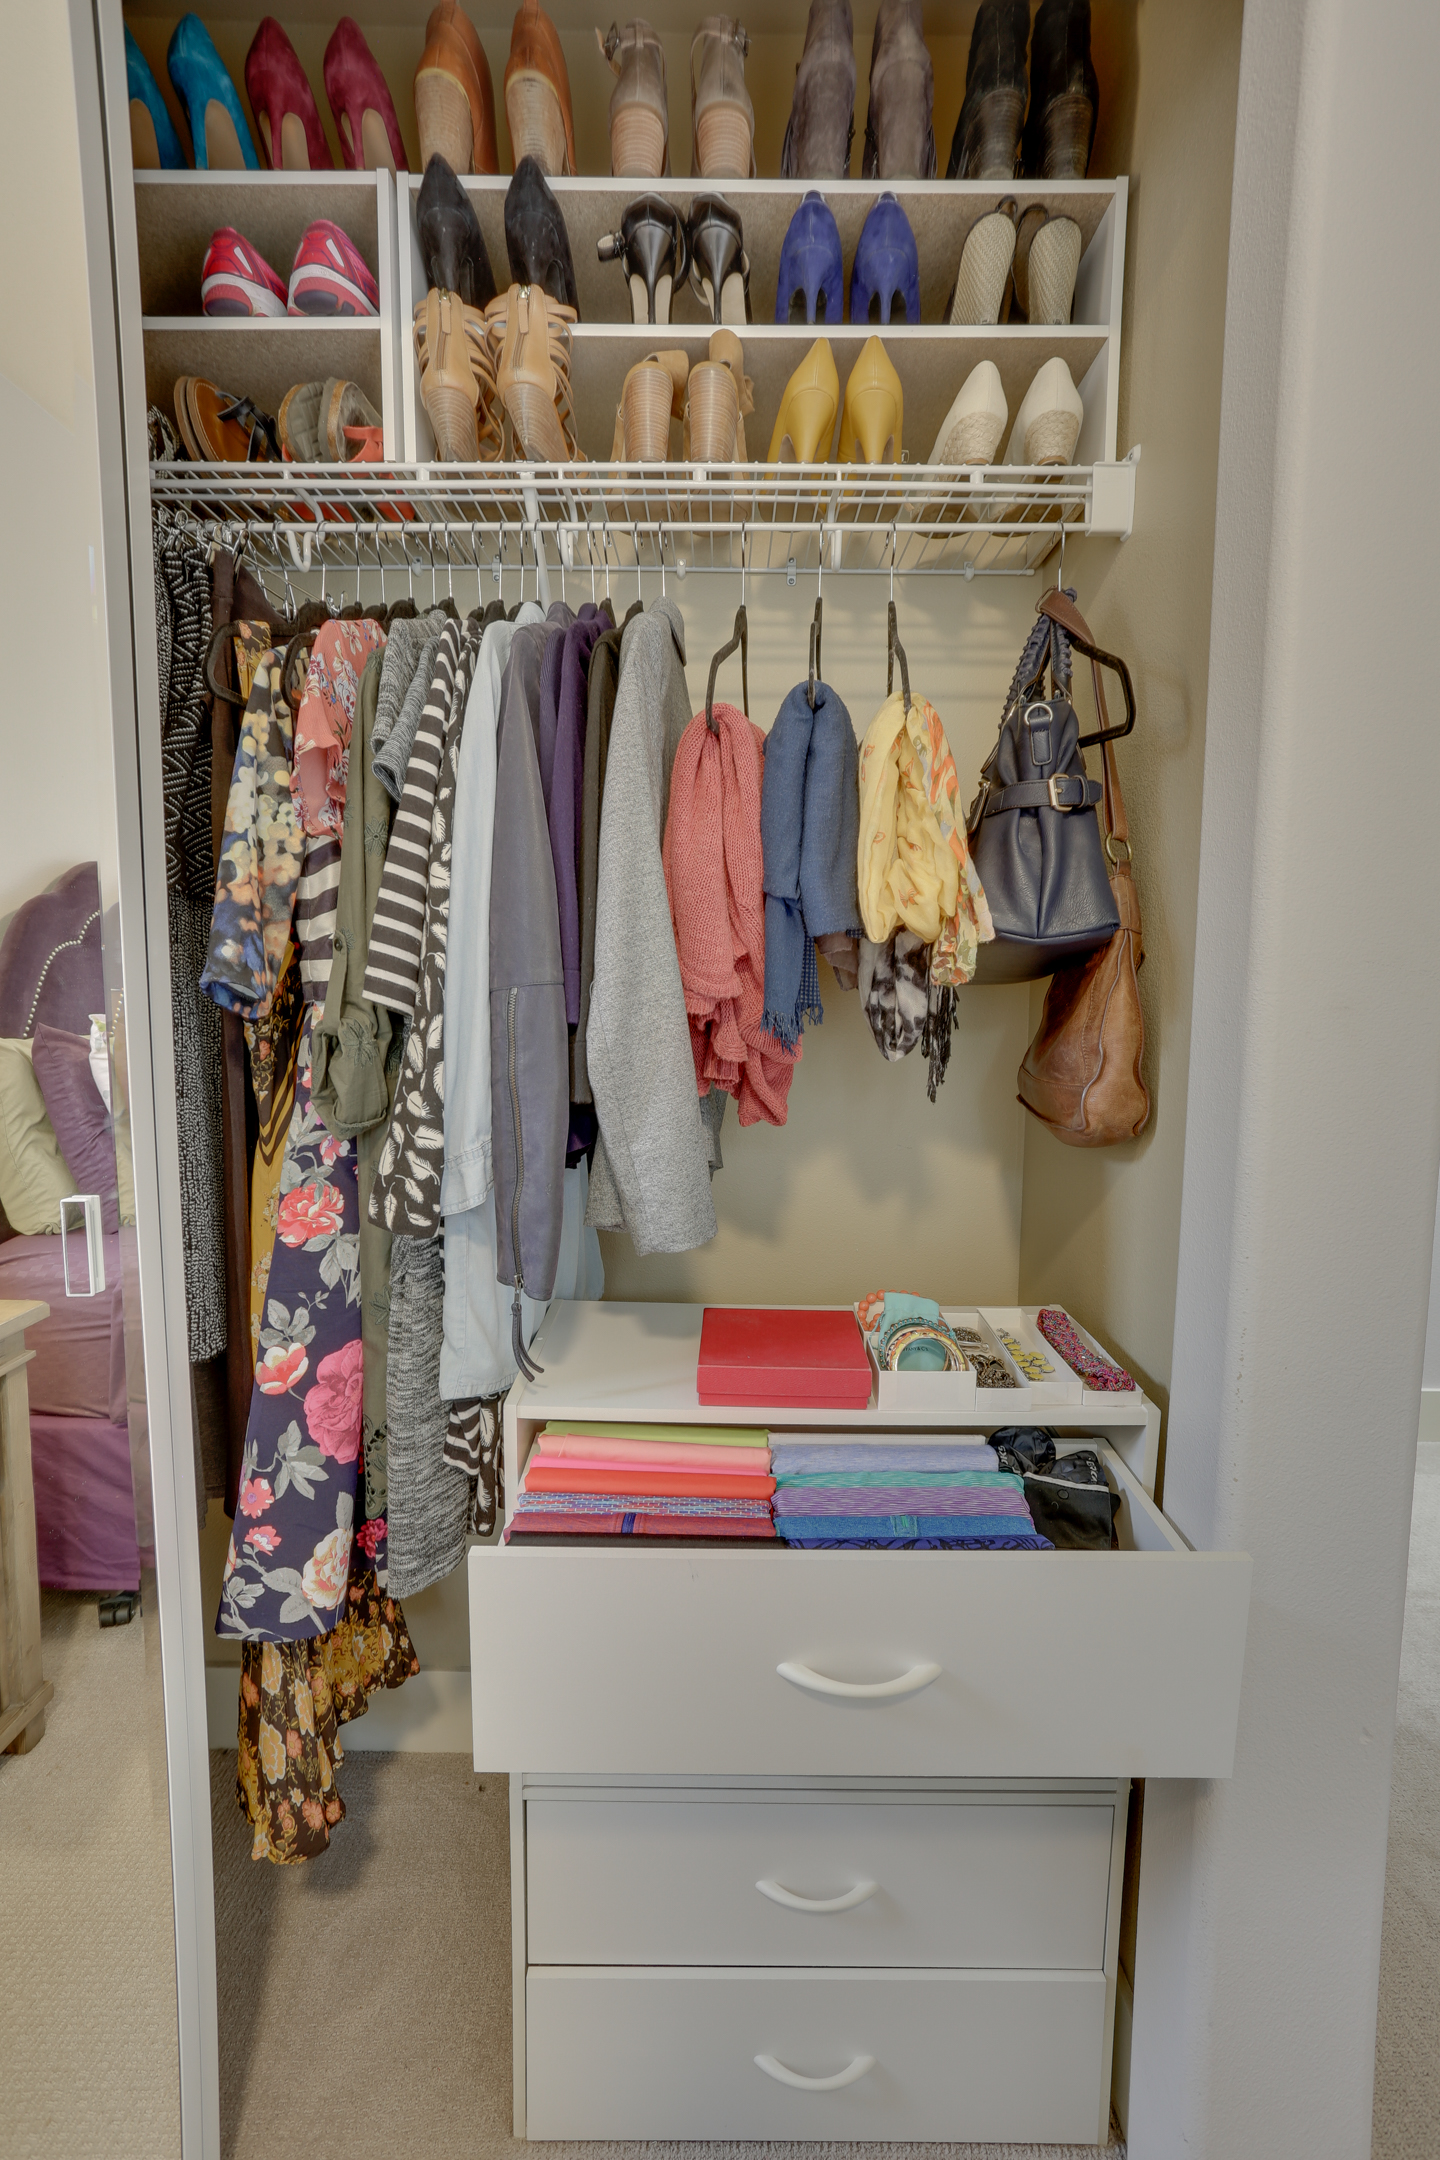 In Most Closets, I Notice That People Tend To Store Shoes On The Closet  Floor, Usually In One Of Those Shoe Racks That Impales The Shoe On A Wire  Rack.